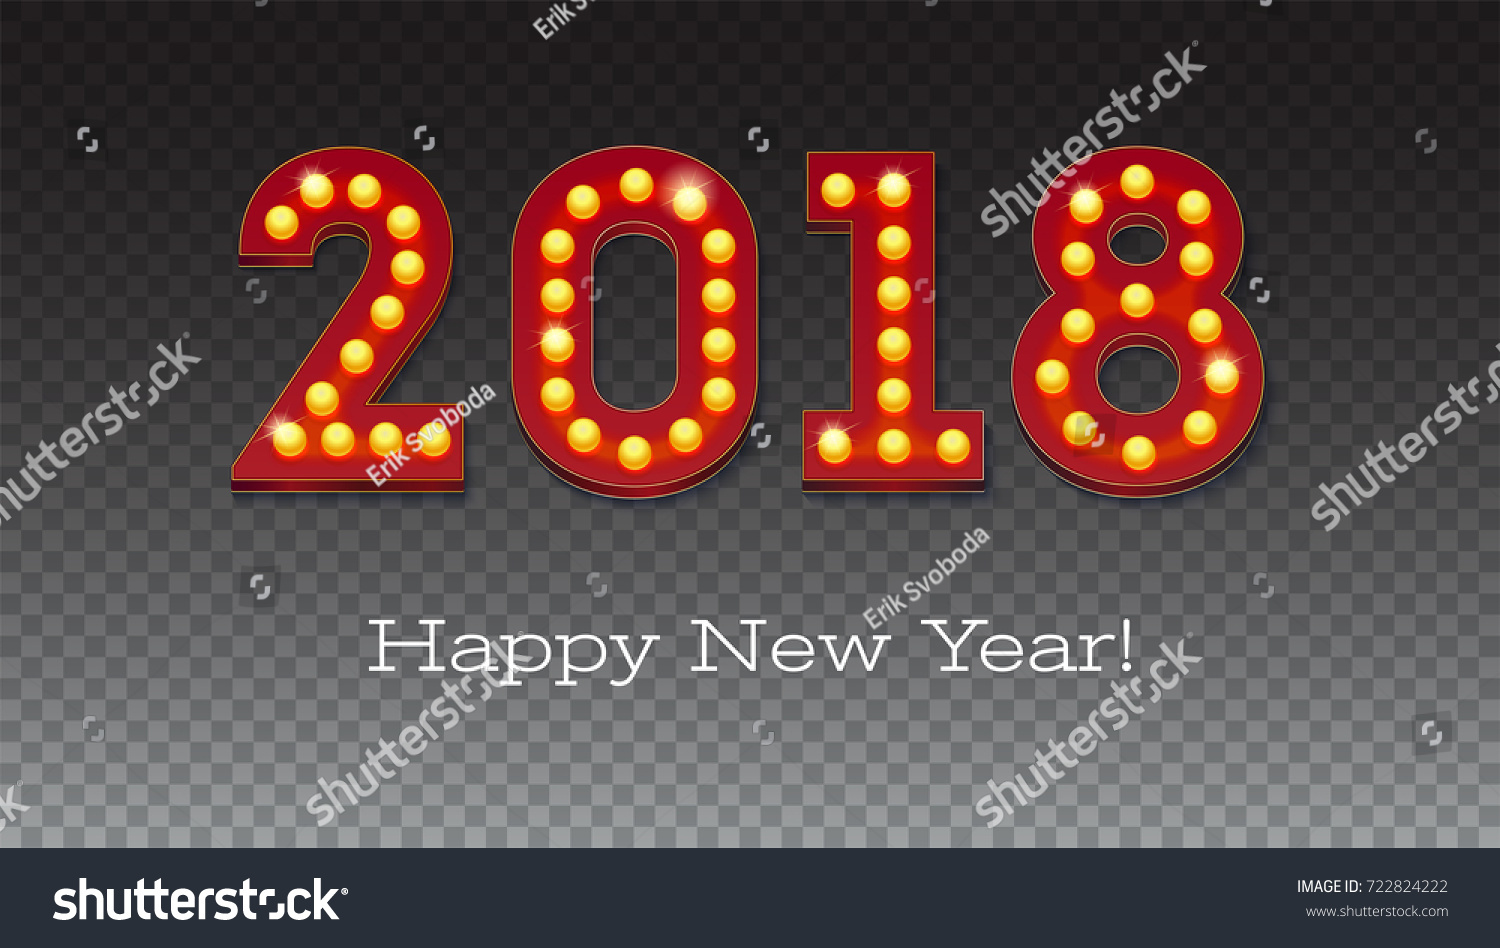 Greeting card new coming 2018 text stock vector 722824222 shutterstock greeting card with the new coming 2018 the text in the style of american casino kristyandbryce Images